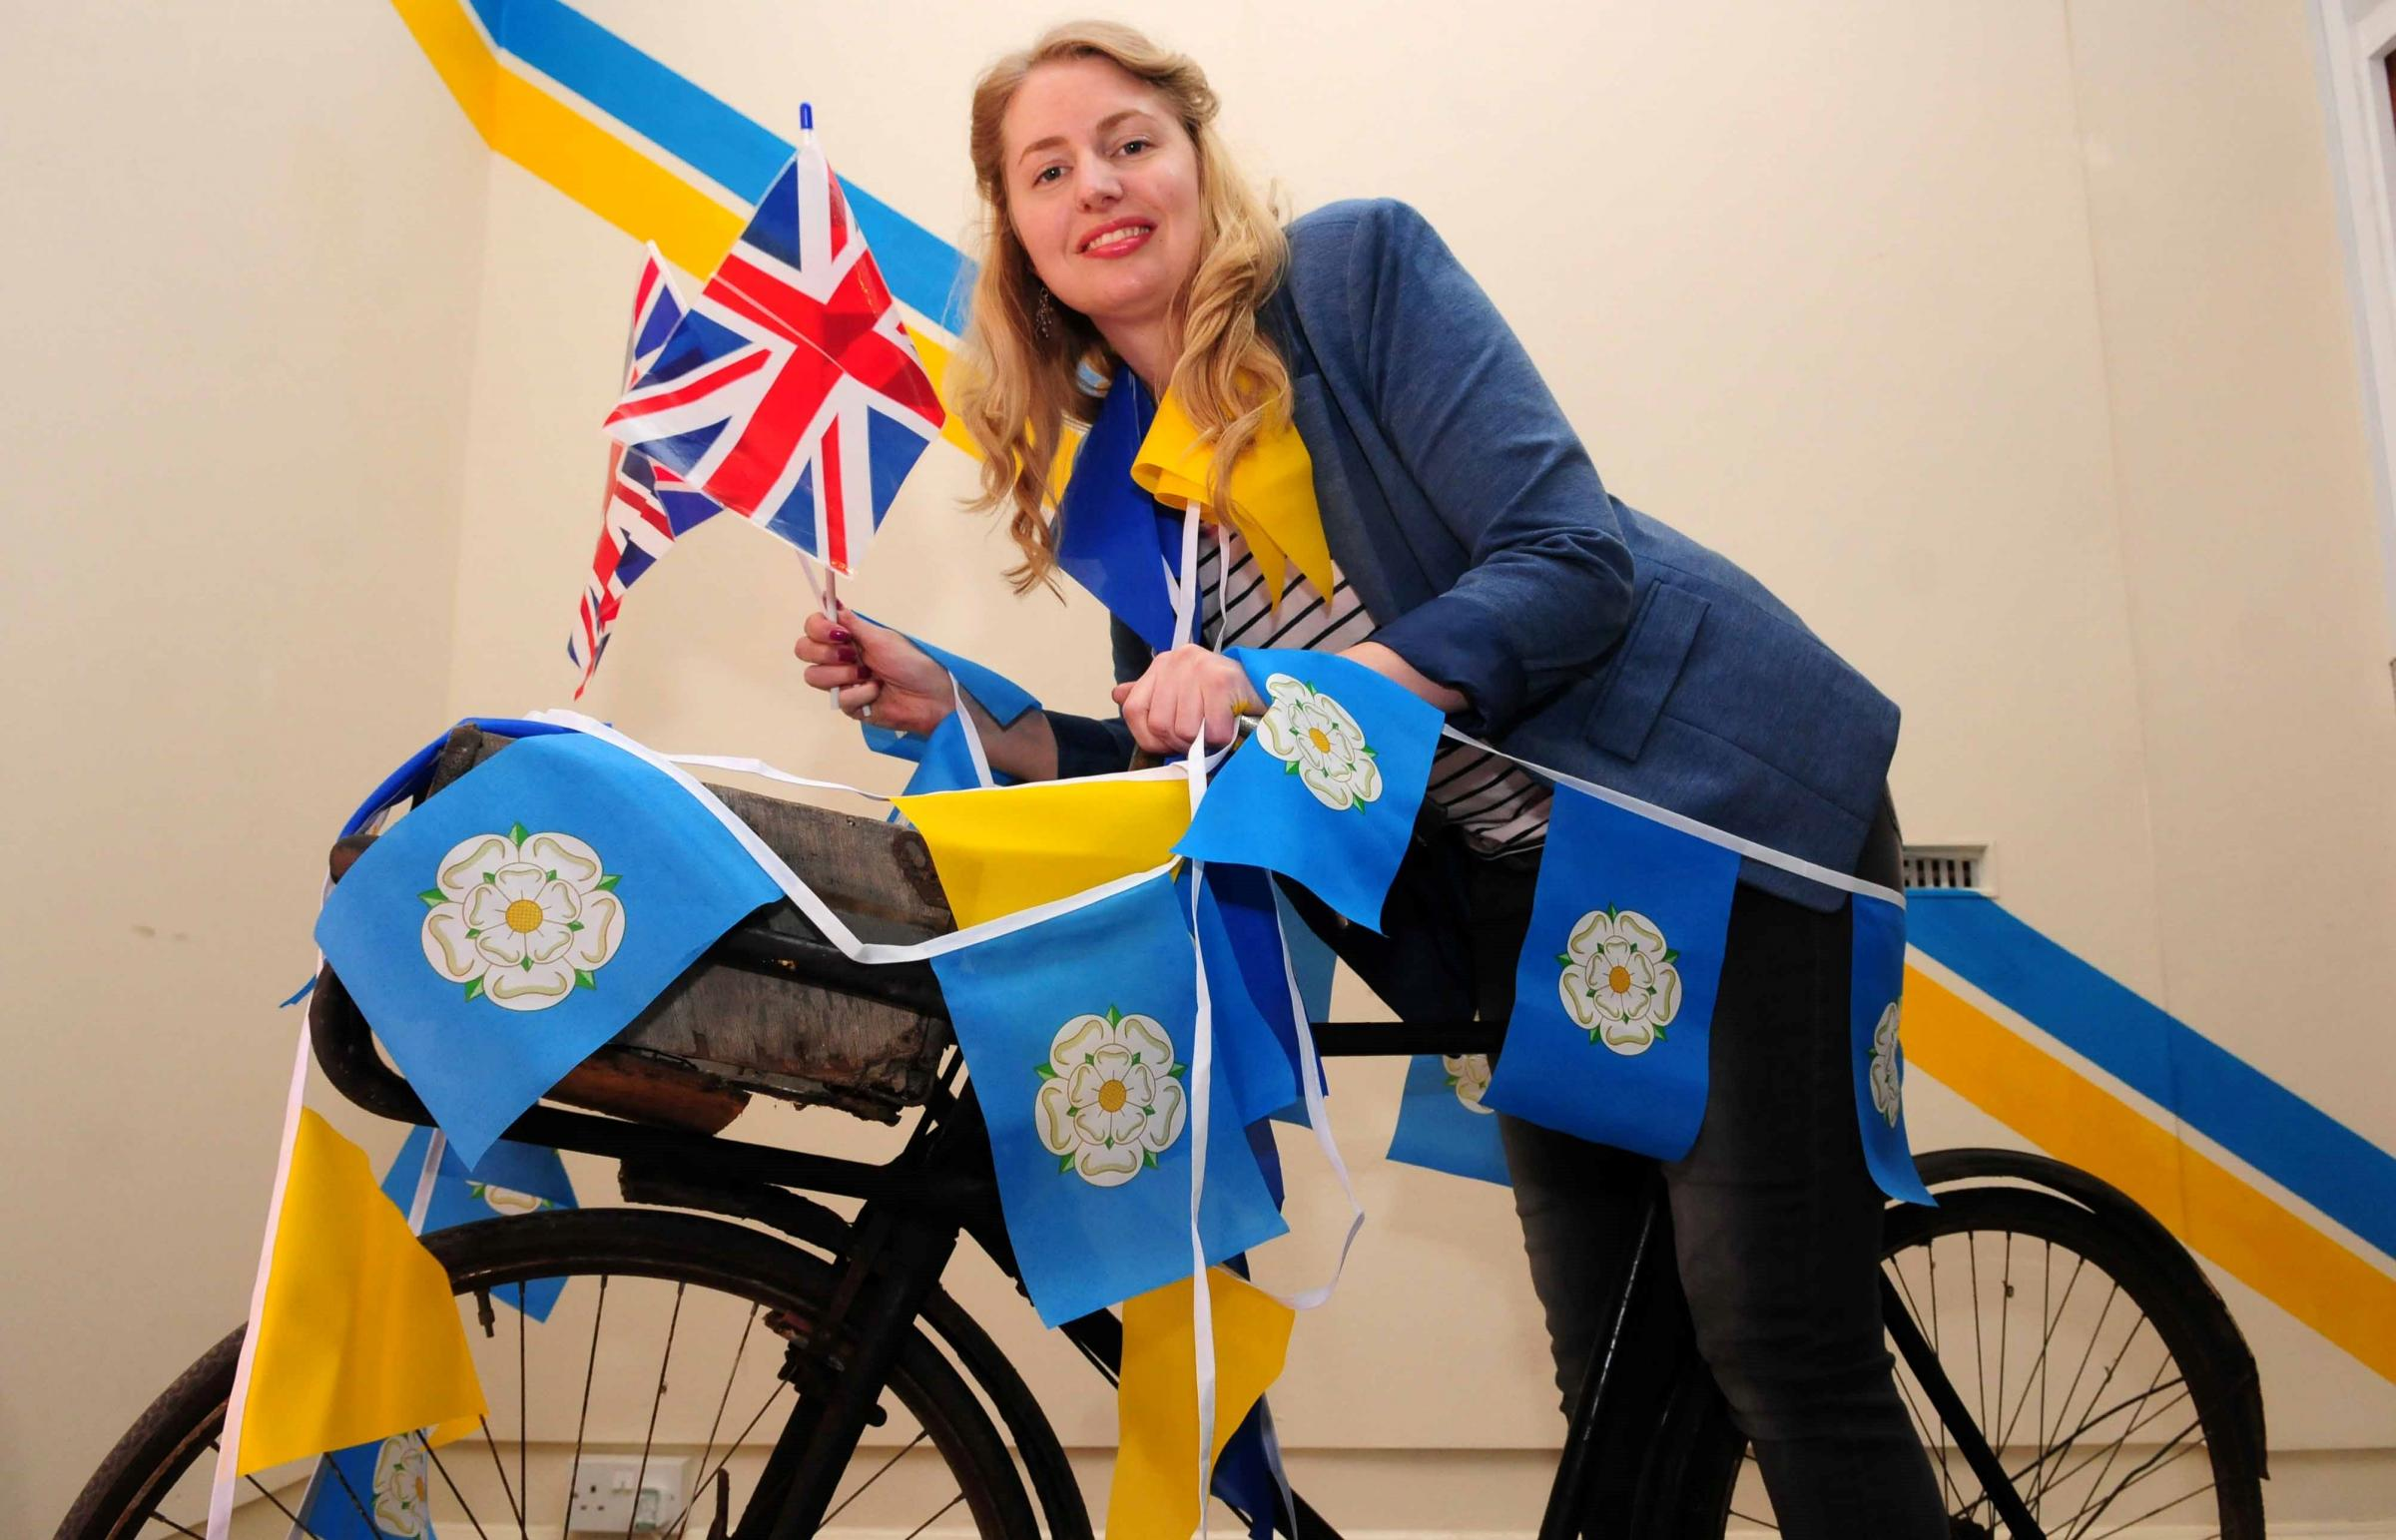 Beck Isle Museum's Kerry Metcalfe installs a Tour de Yorkshire-themed exhibit